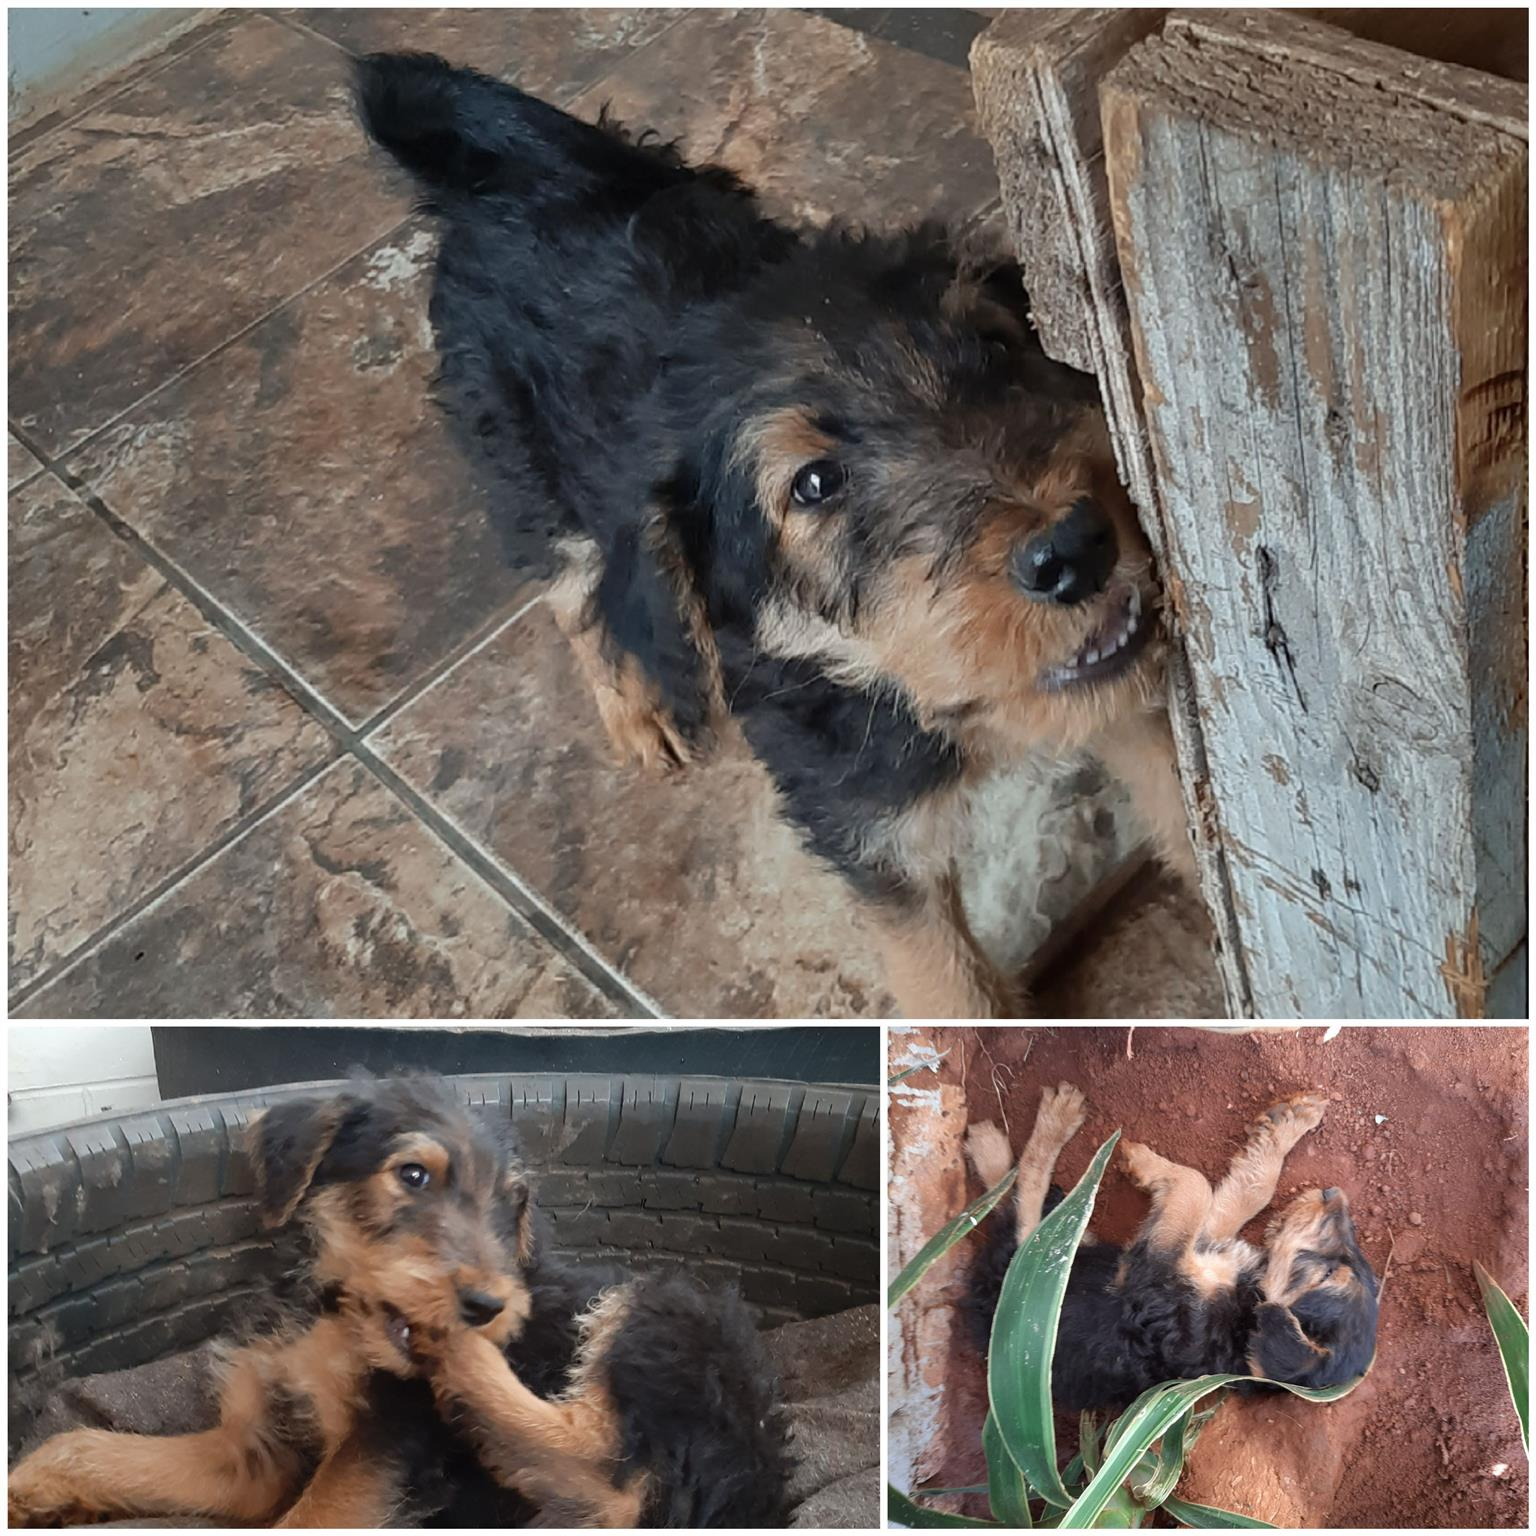 AIREDALE TERRIER PUPPIES FOR SALE